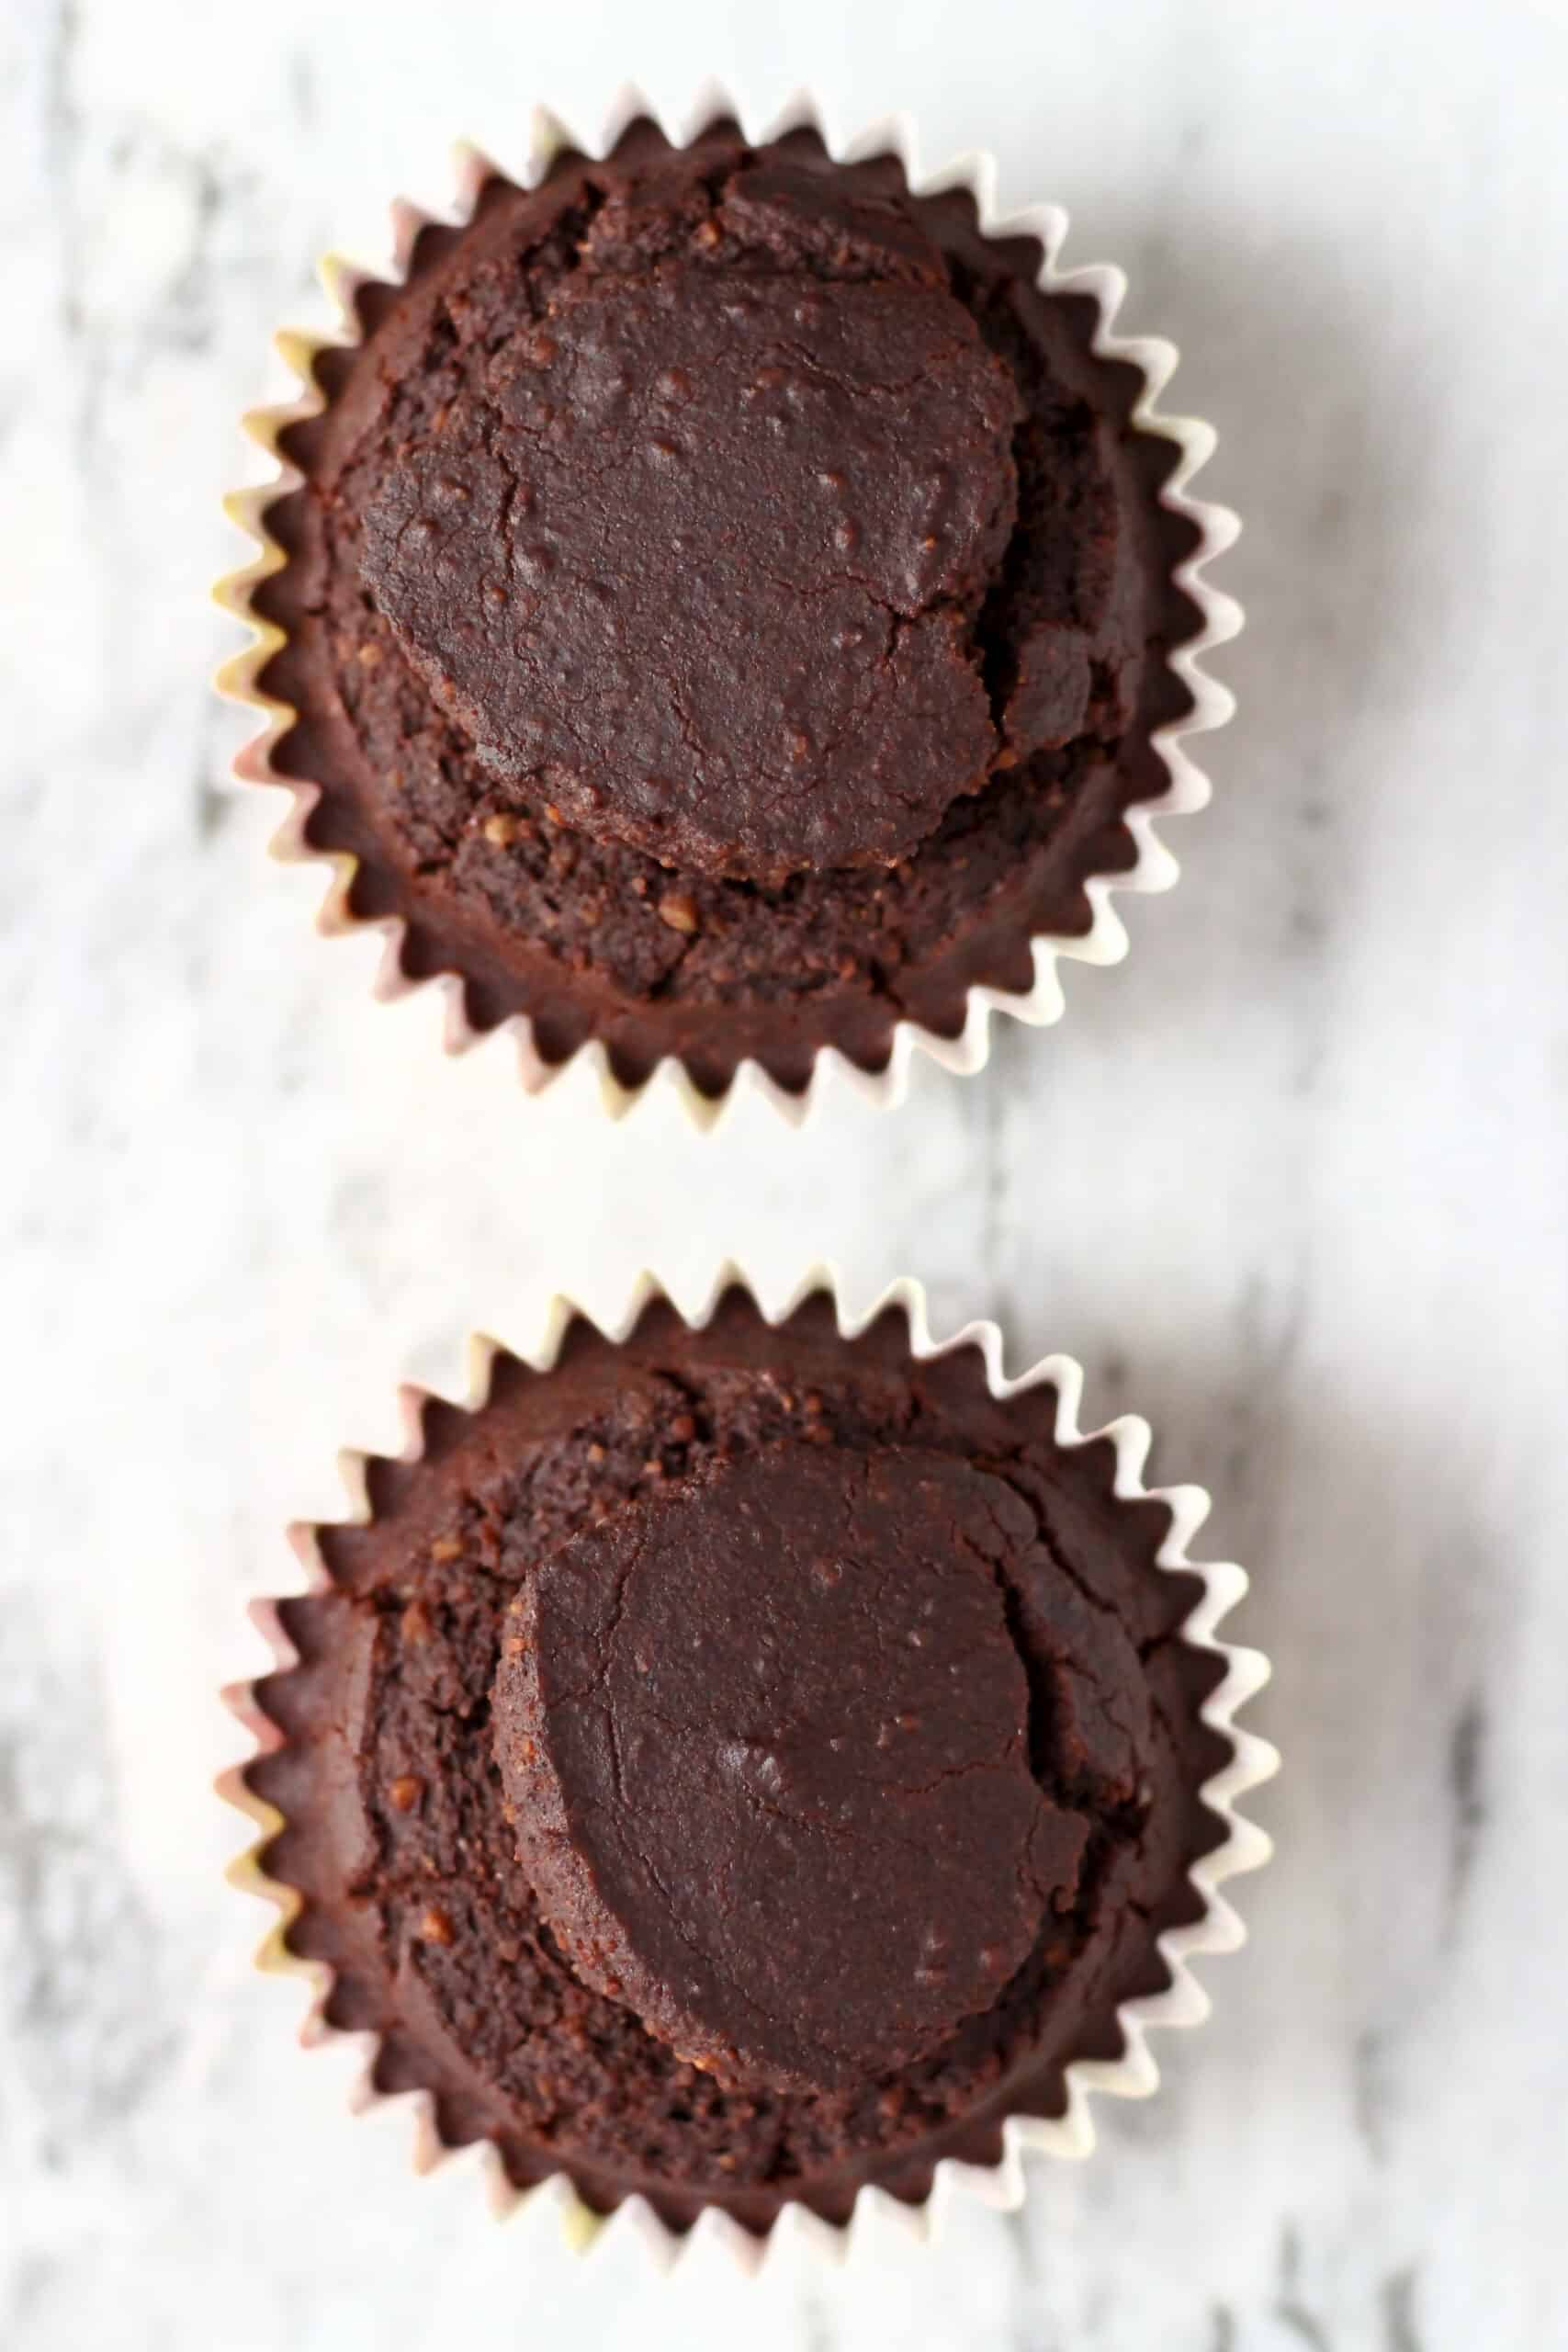 Two baked gluten-free vegan chocolate cupcakes in cupcake cases